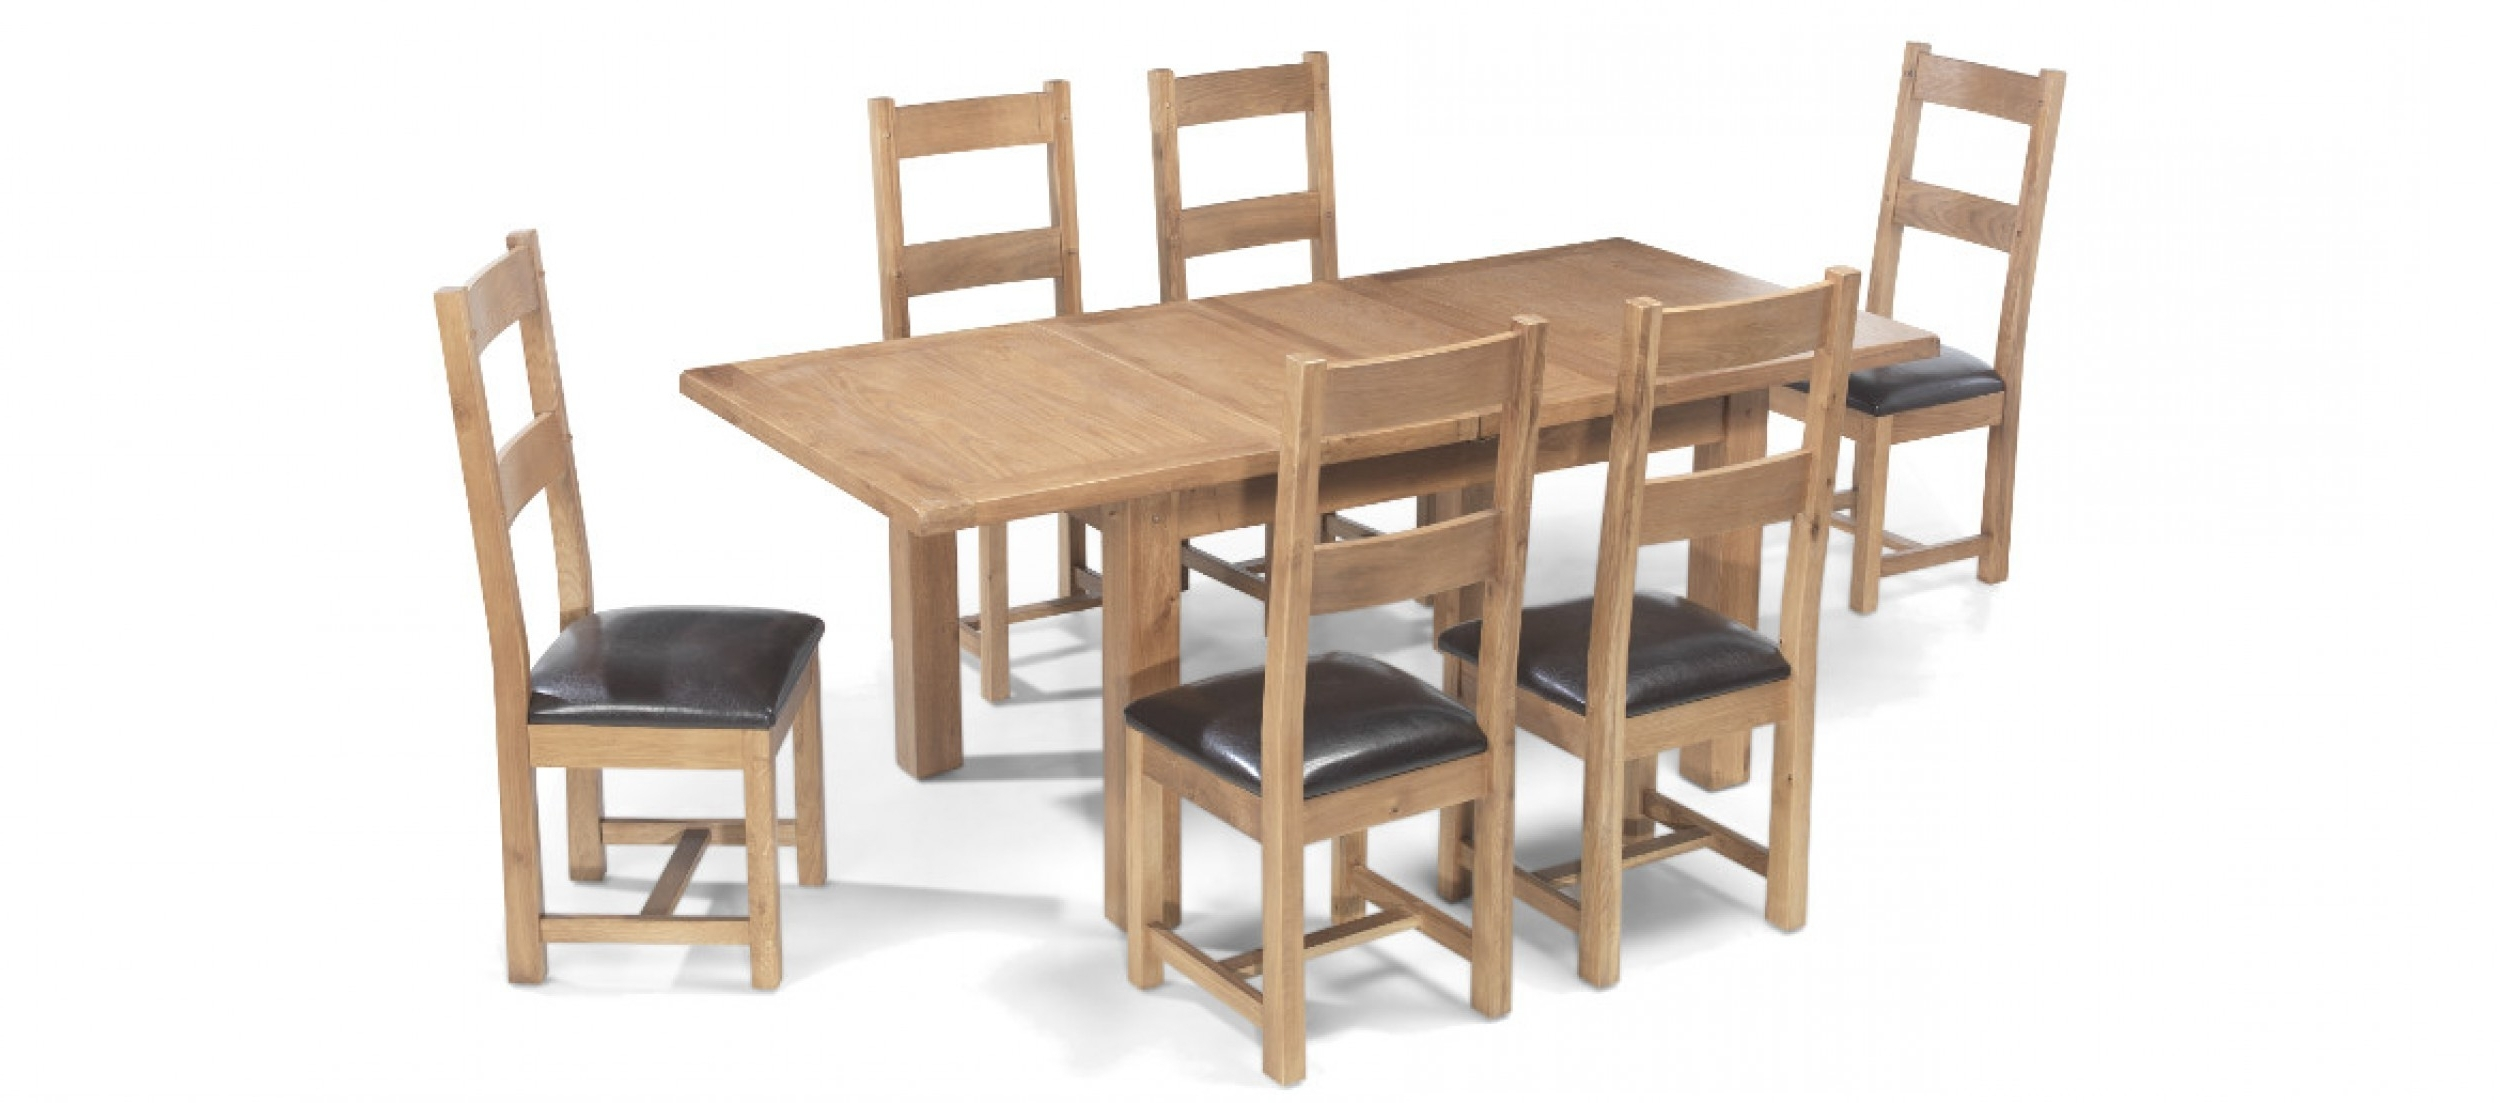 Quercus Throughout Extending Dining Tables And 6 Chairs (Gallery 3 of 25)